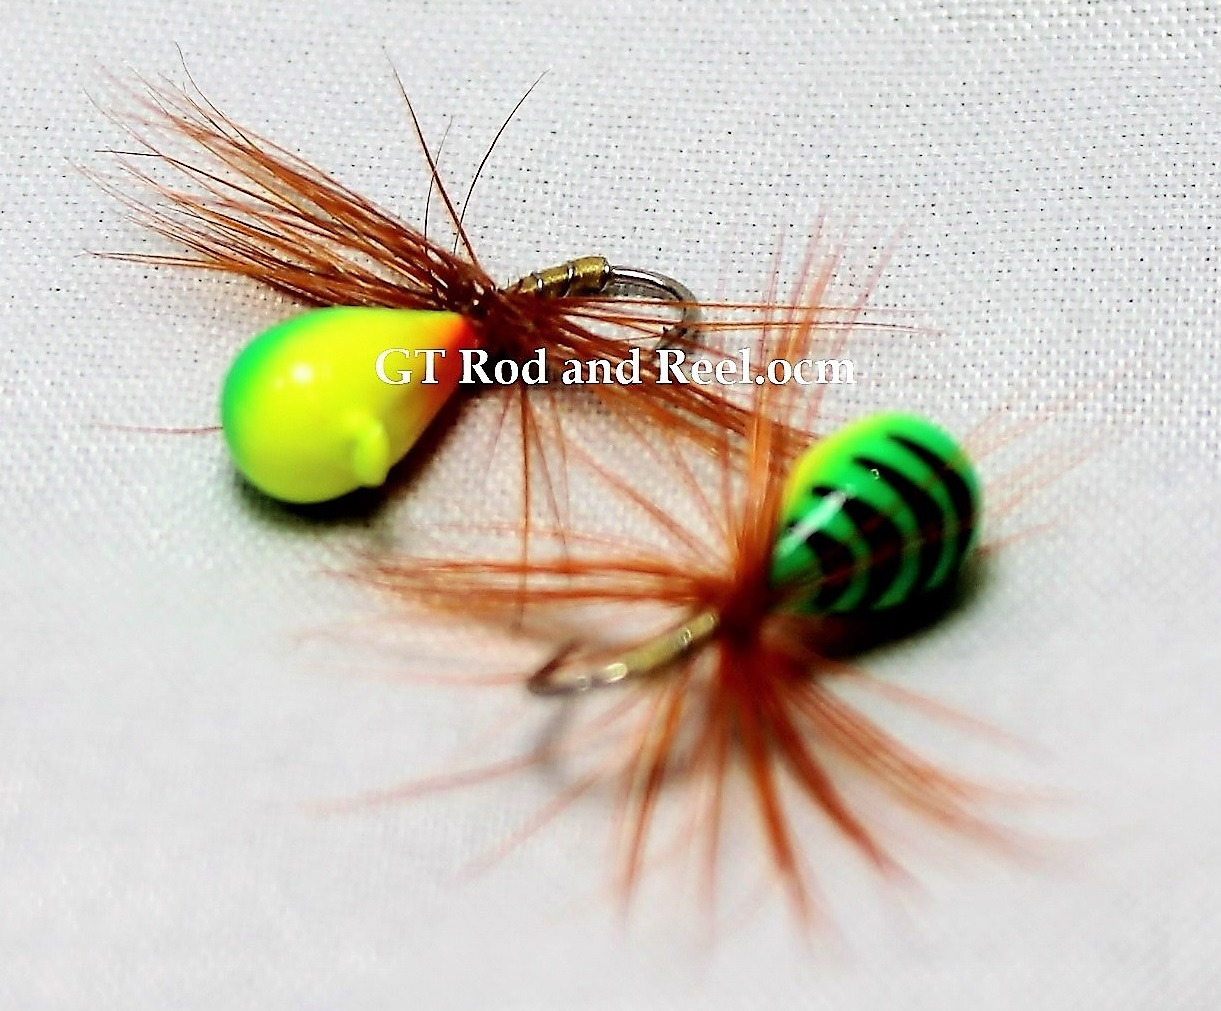 #905-f 4 each Tungsten Ice Fishing Tear Drop Jig 1.85 Gram #12 Hook w/Feather Glowing Tiger